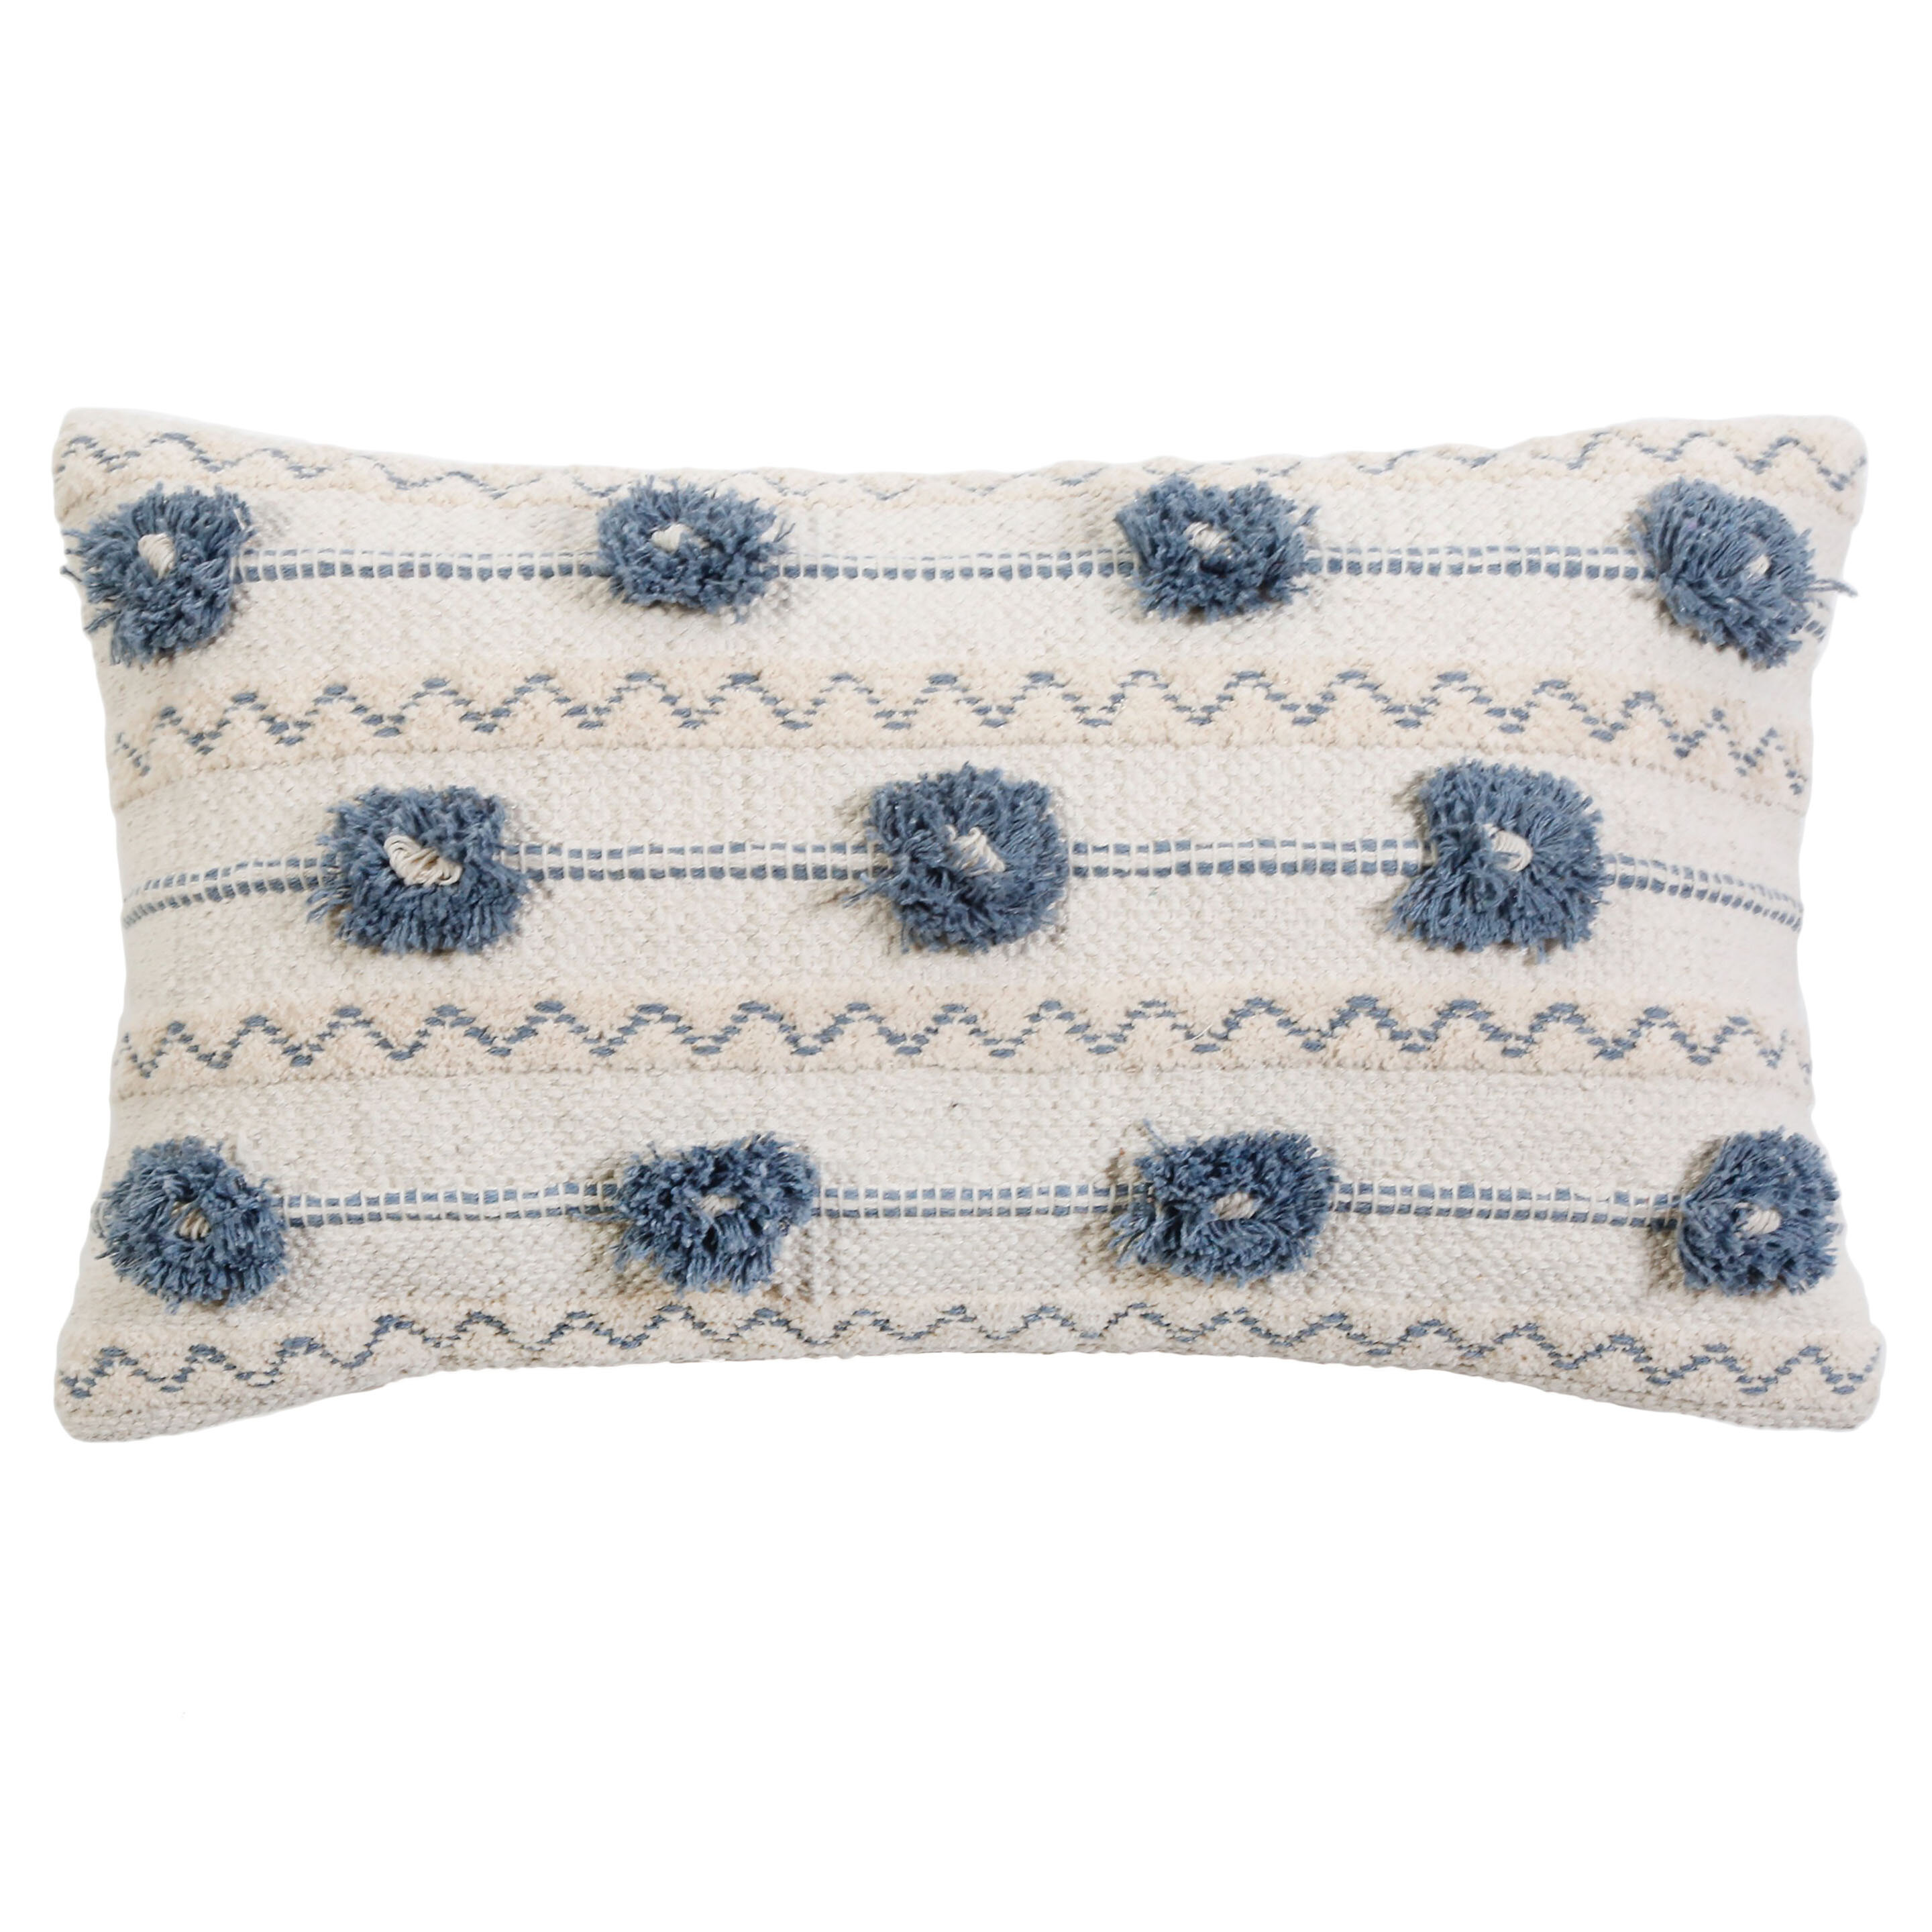 Pom Pom At Home Izzy Cotton Feather Striped Lumbar Pillow Perigold